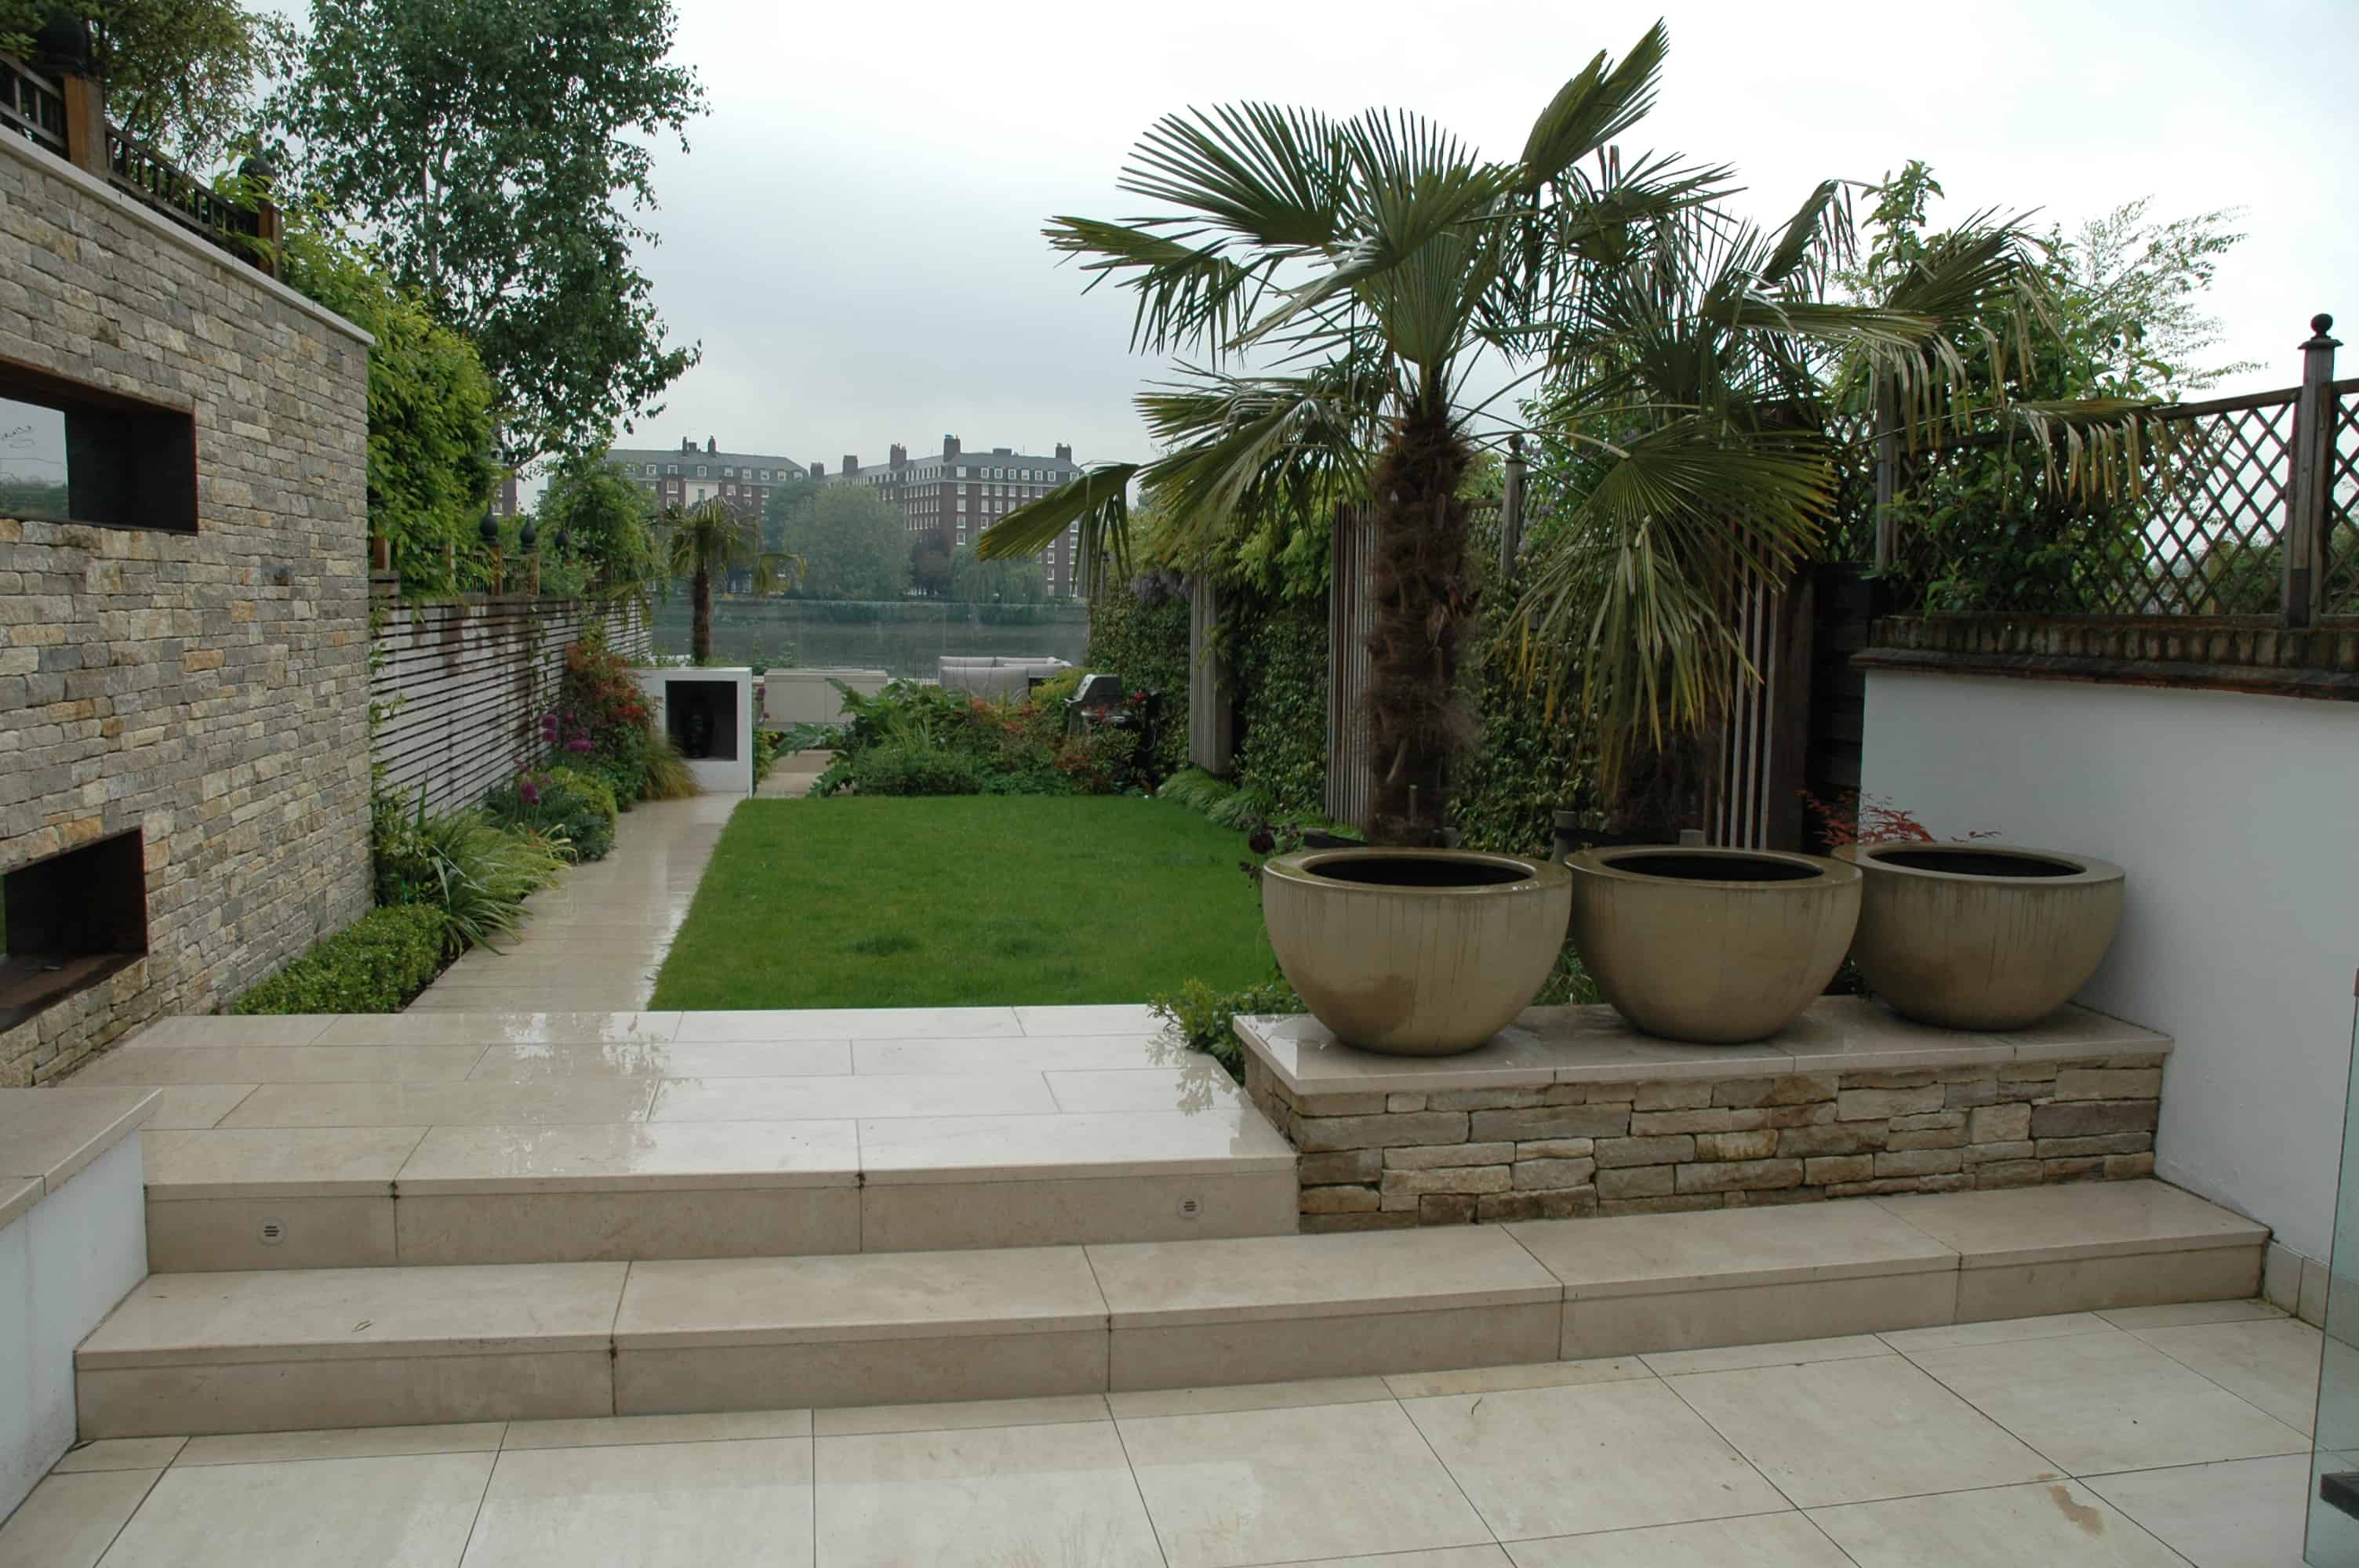 Bali national landscape awards 2013 winners announced for Landscape design london